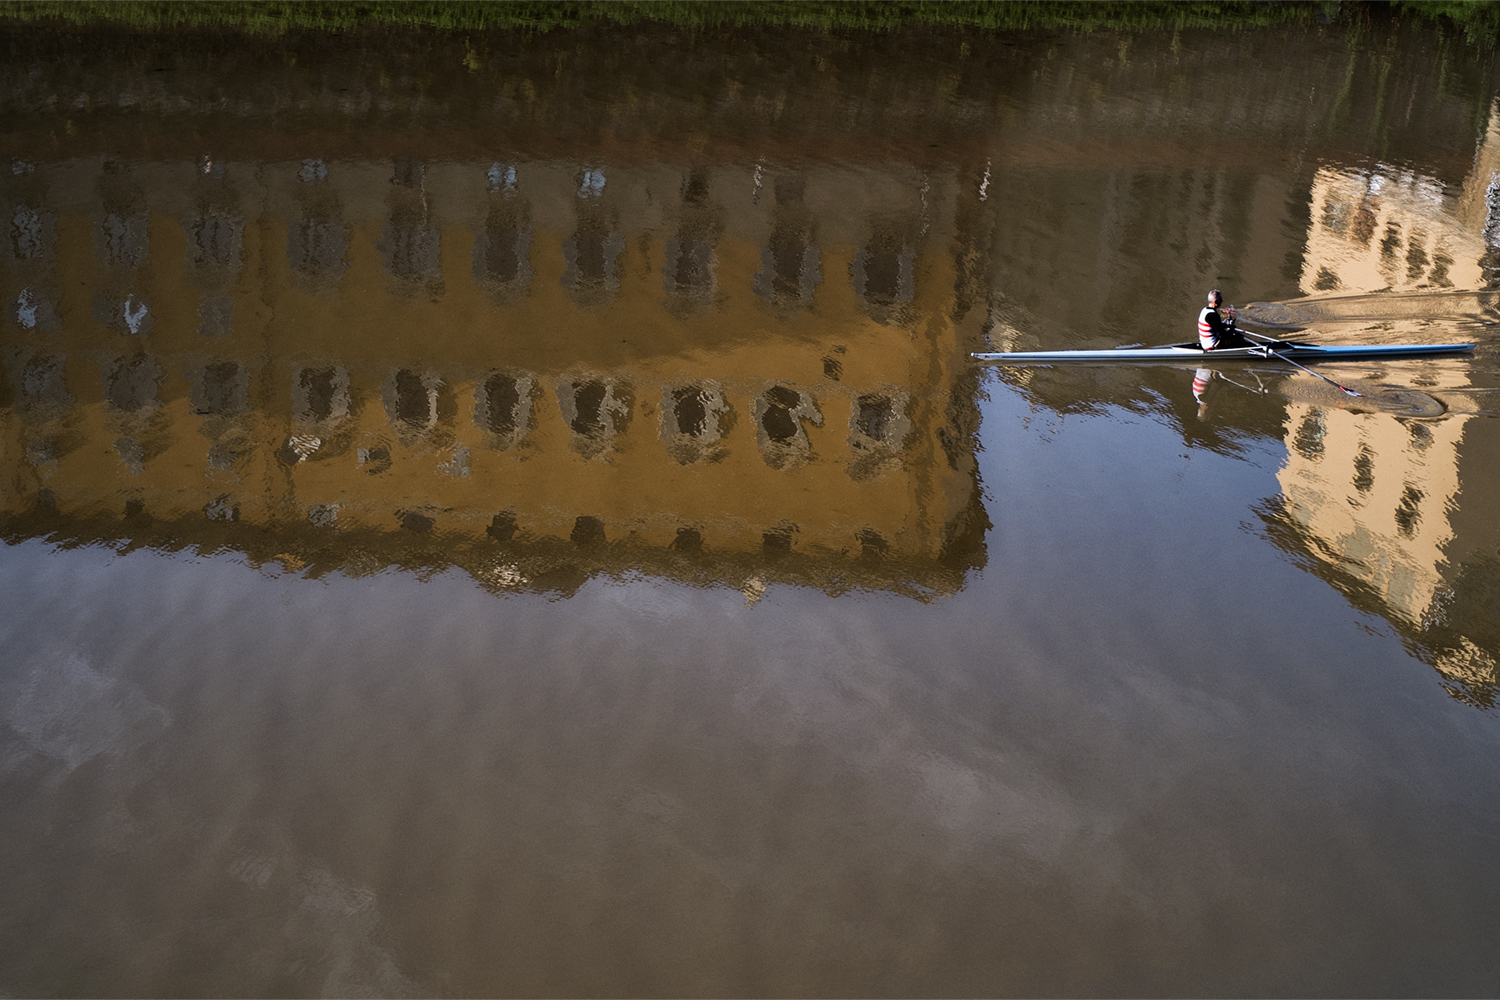 Rowing on the Arno